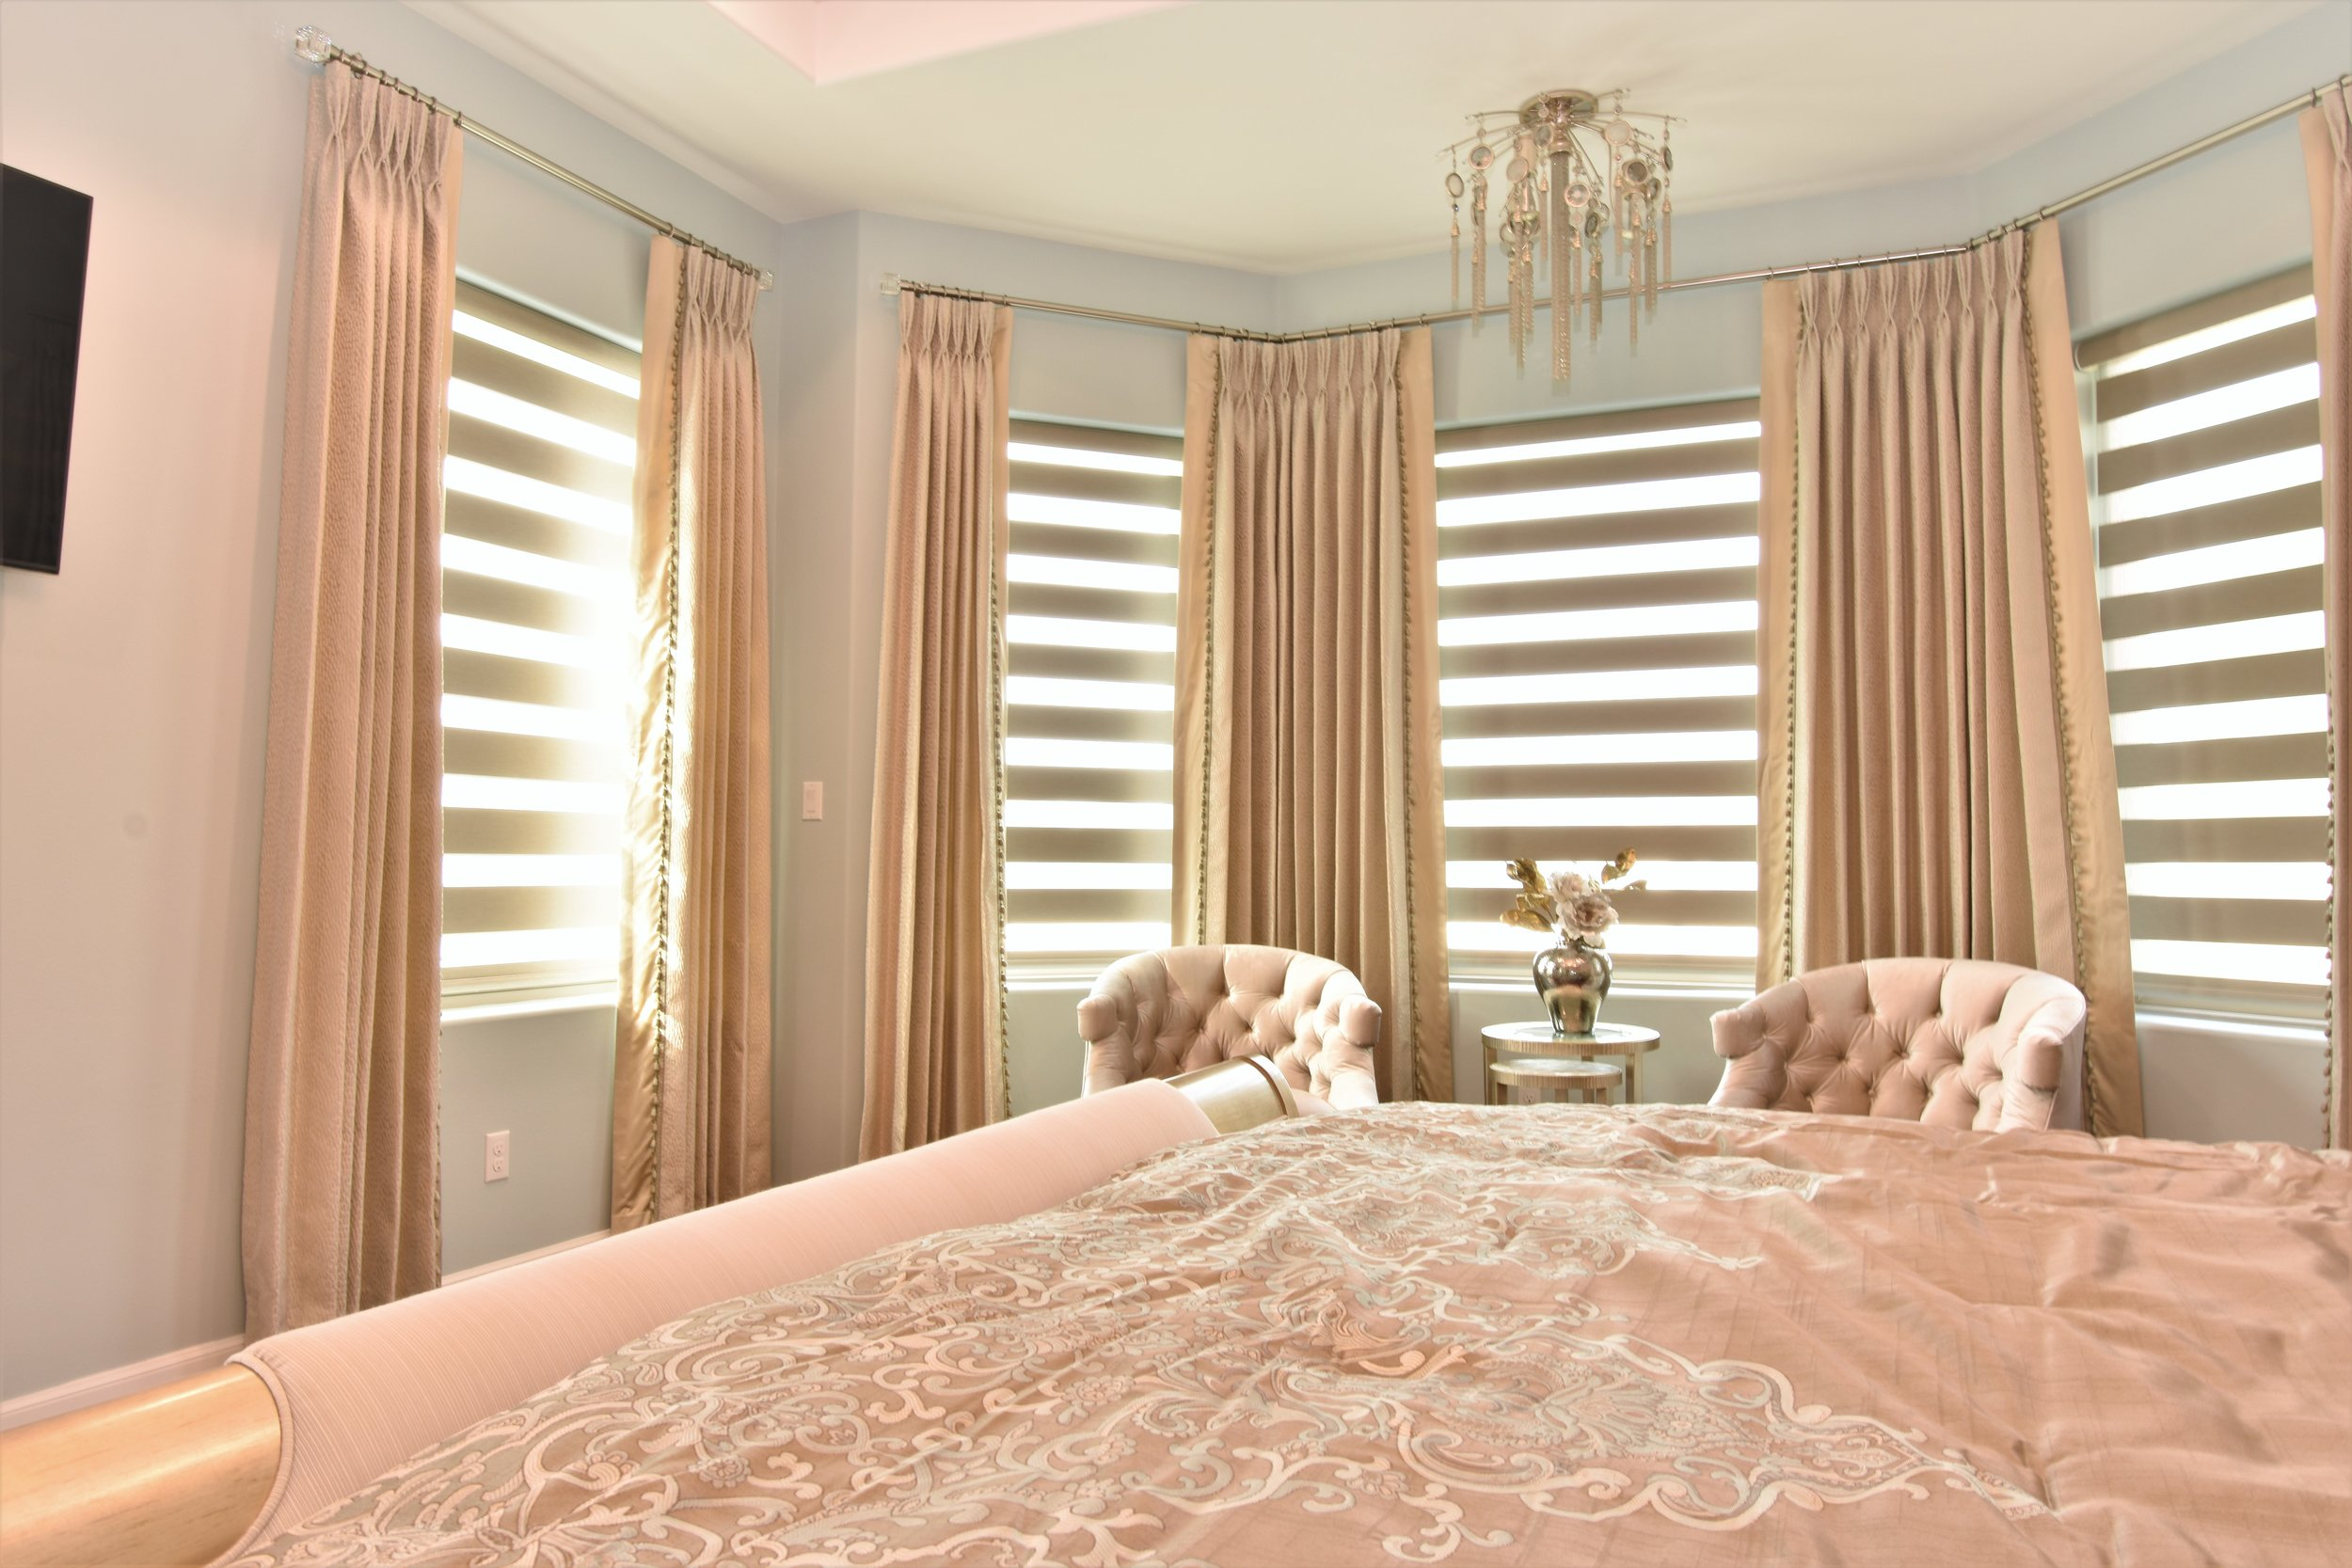 Custom Design Window Treatments by Alejandra Canales Ac Design Studio Custom Drapes and Shades Motorized Window coverings in McAllen Texas (2).JPG